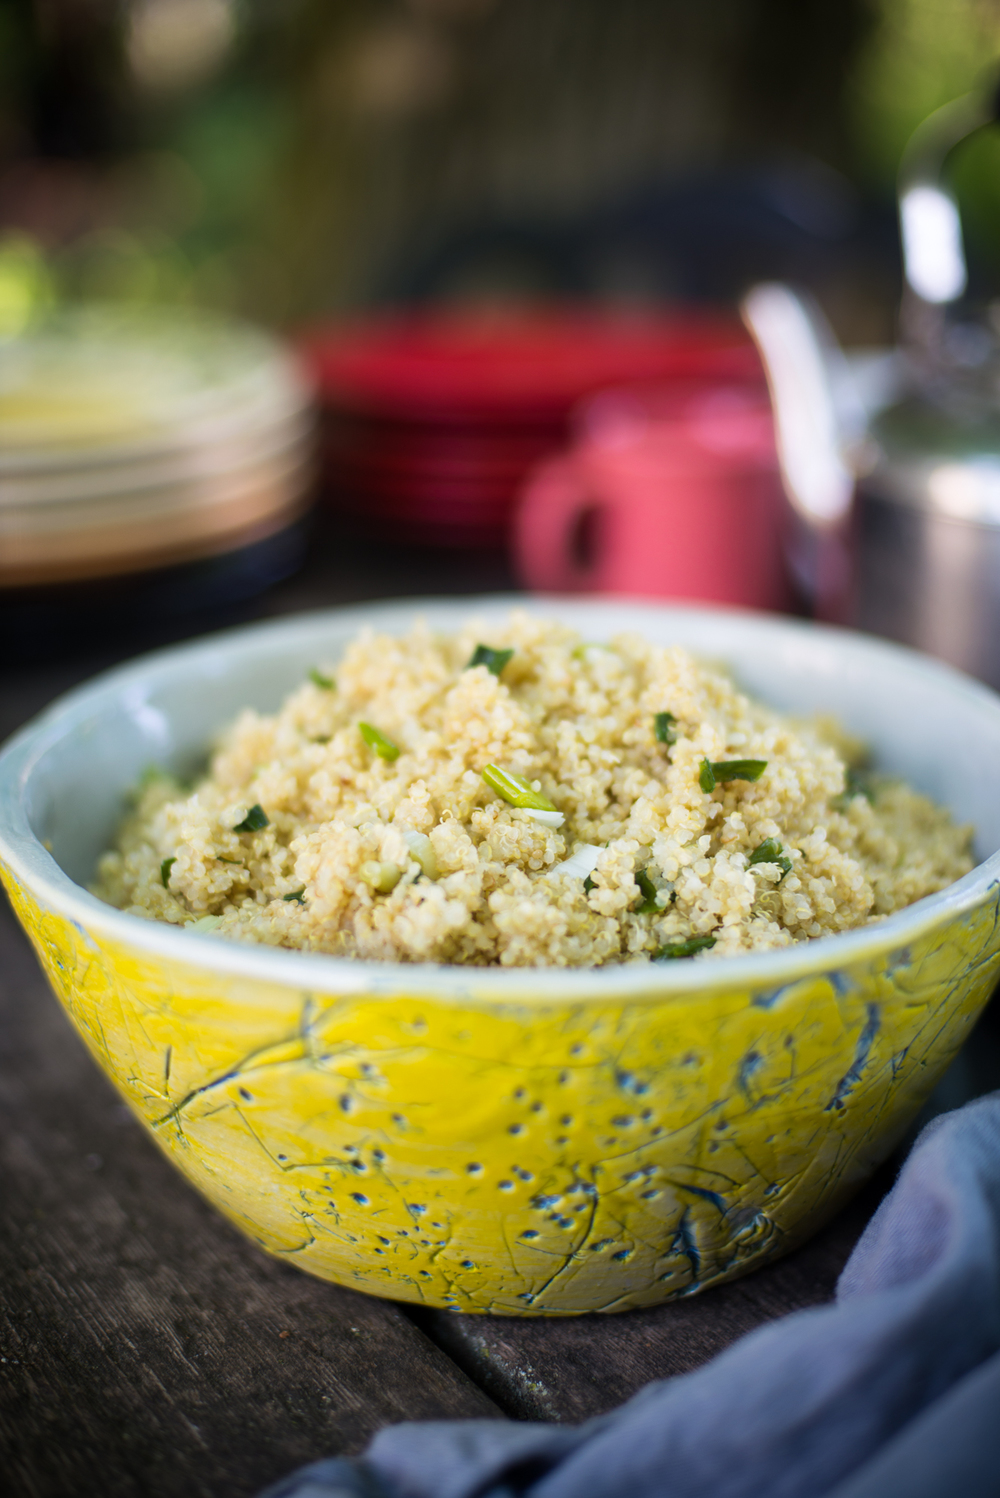 Quinoa pilaf with sauteed scallions in a handmade ceramic bowl by my friend John Grissafi.  He pressed cilantro buds and stems into the sides of the bowl to make the blue pattern.